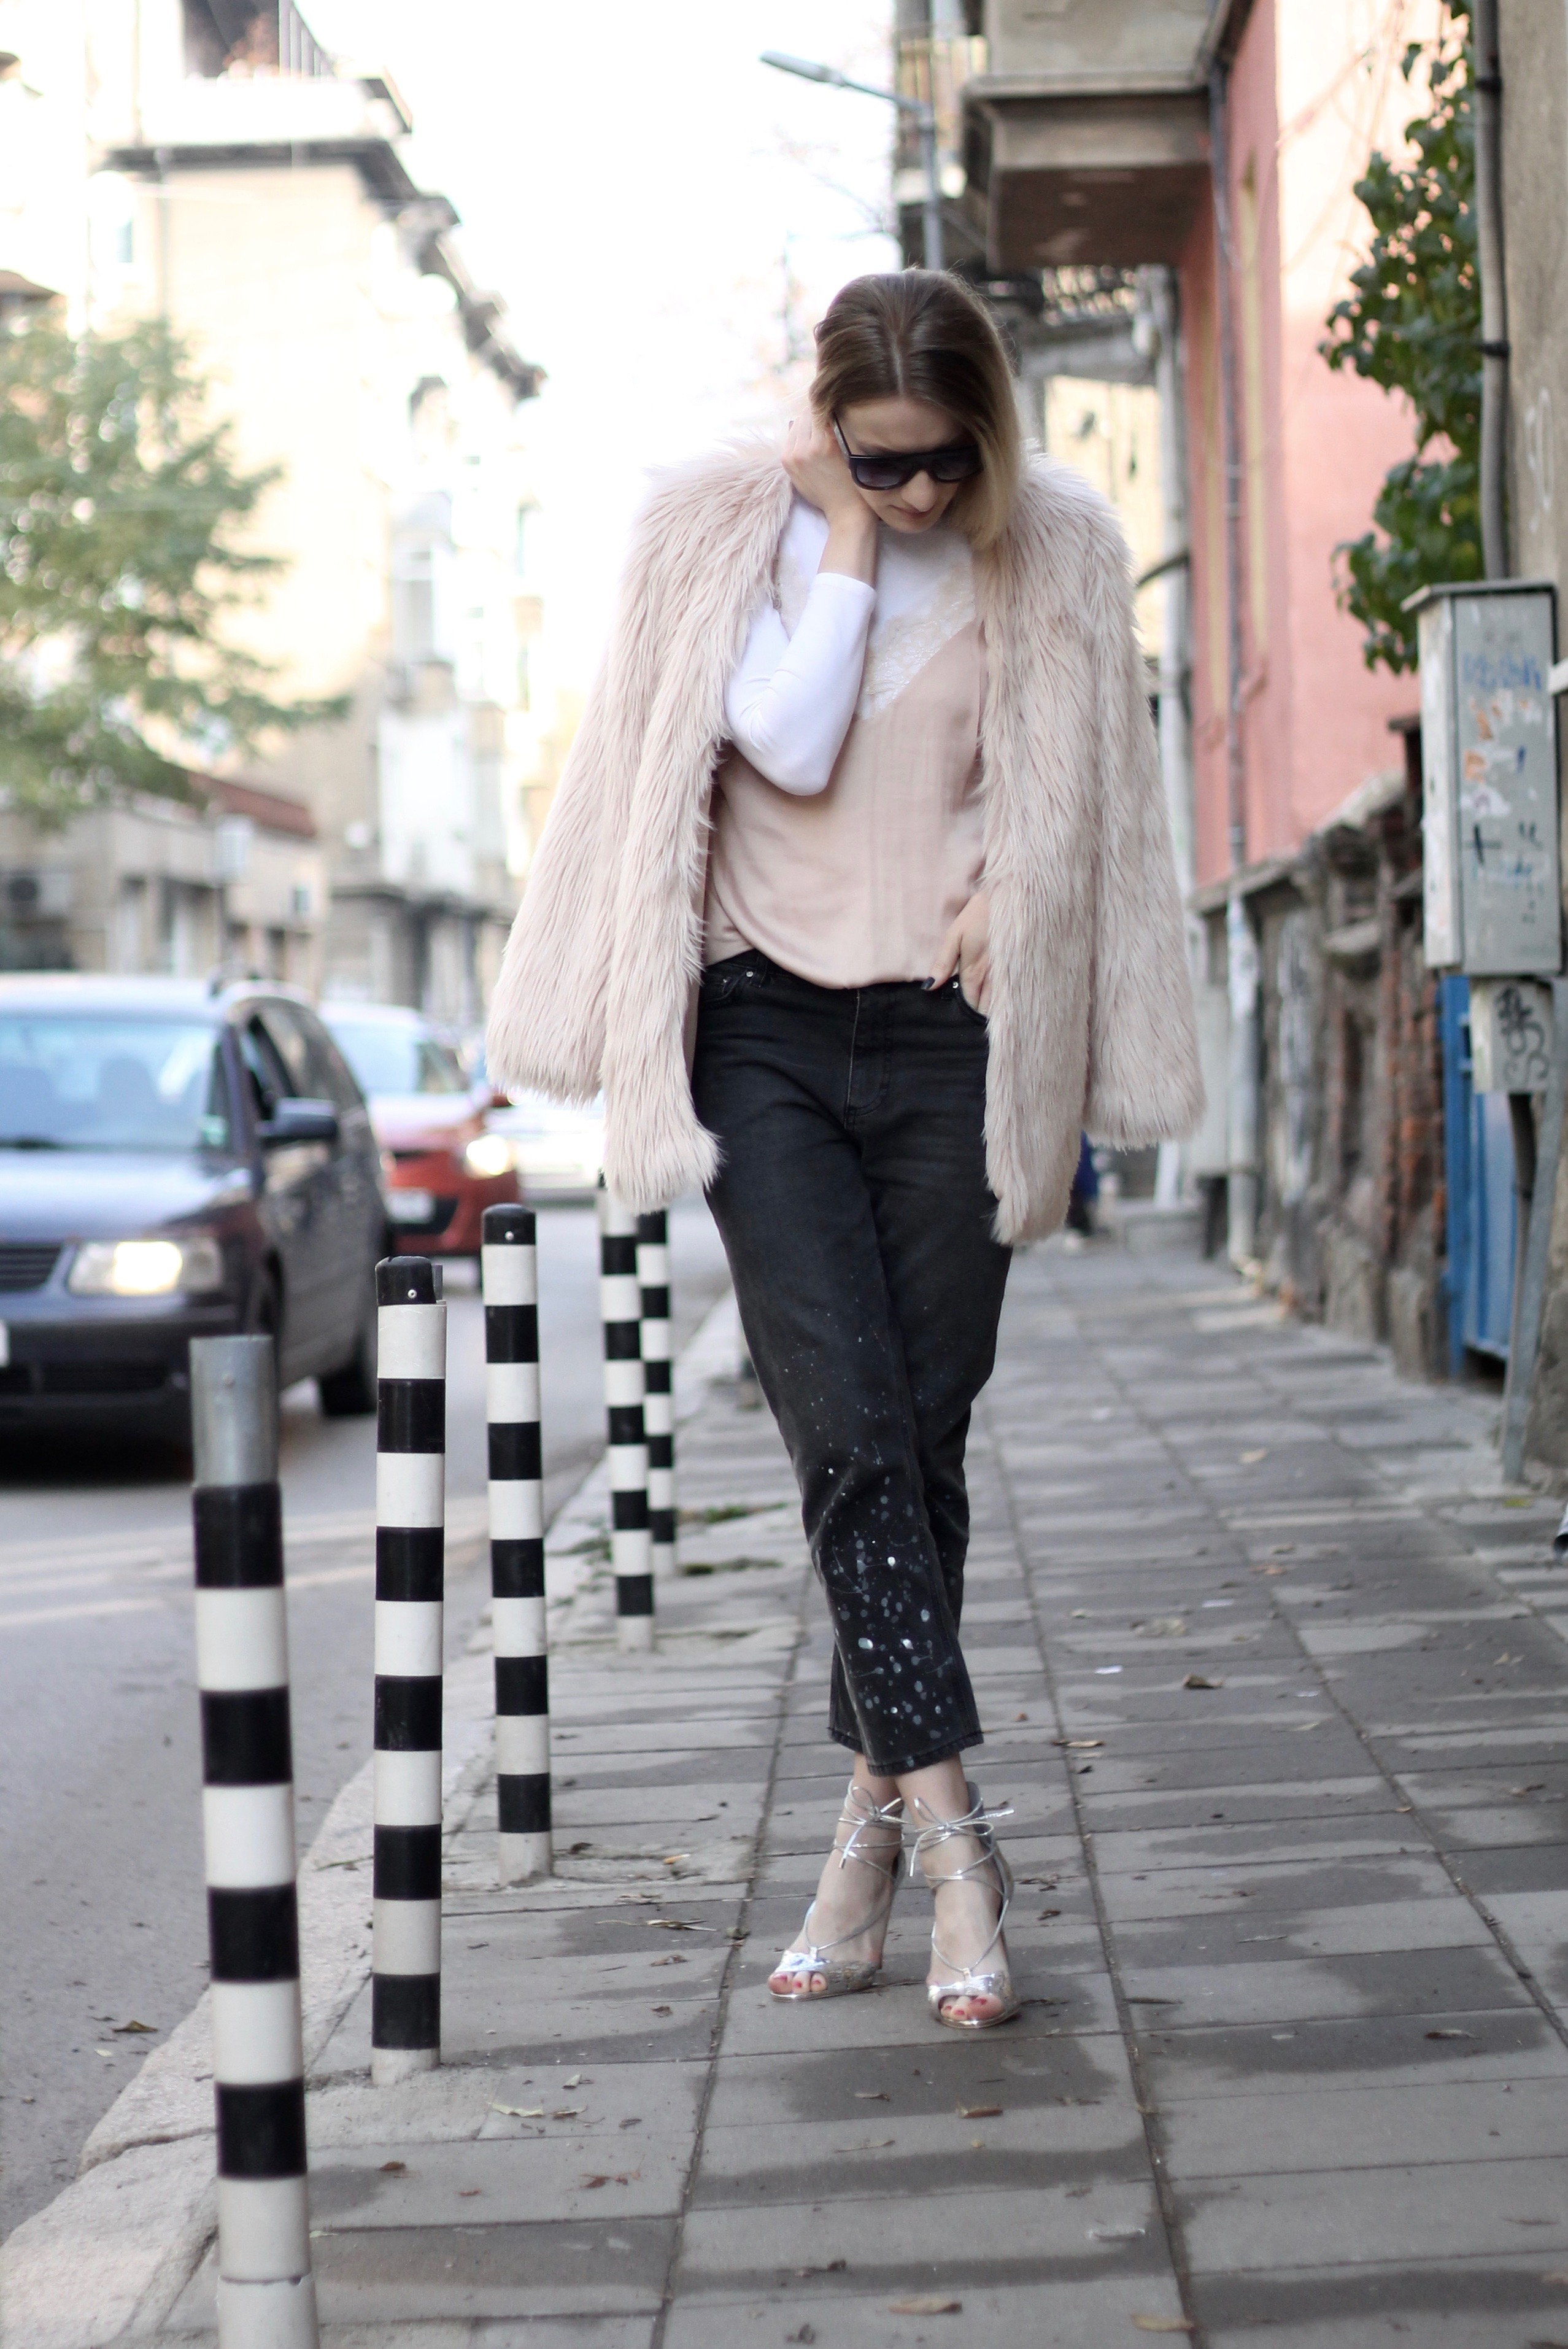 MON MODE | Fashion Blogger | Berlin Street Style | MonMode Blog | Sofia Bulgaria | Travel Europe